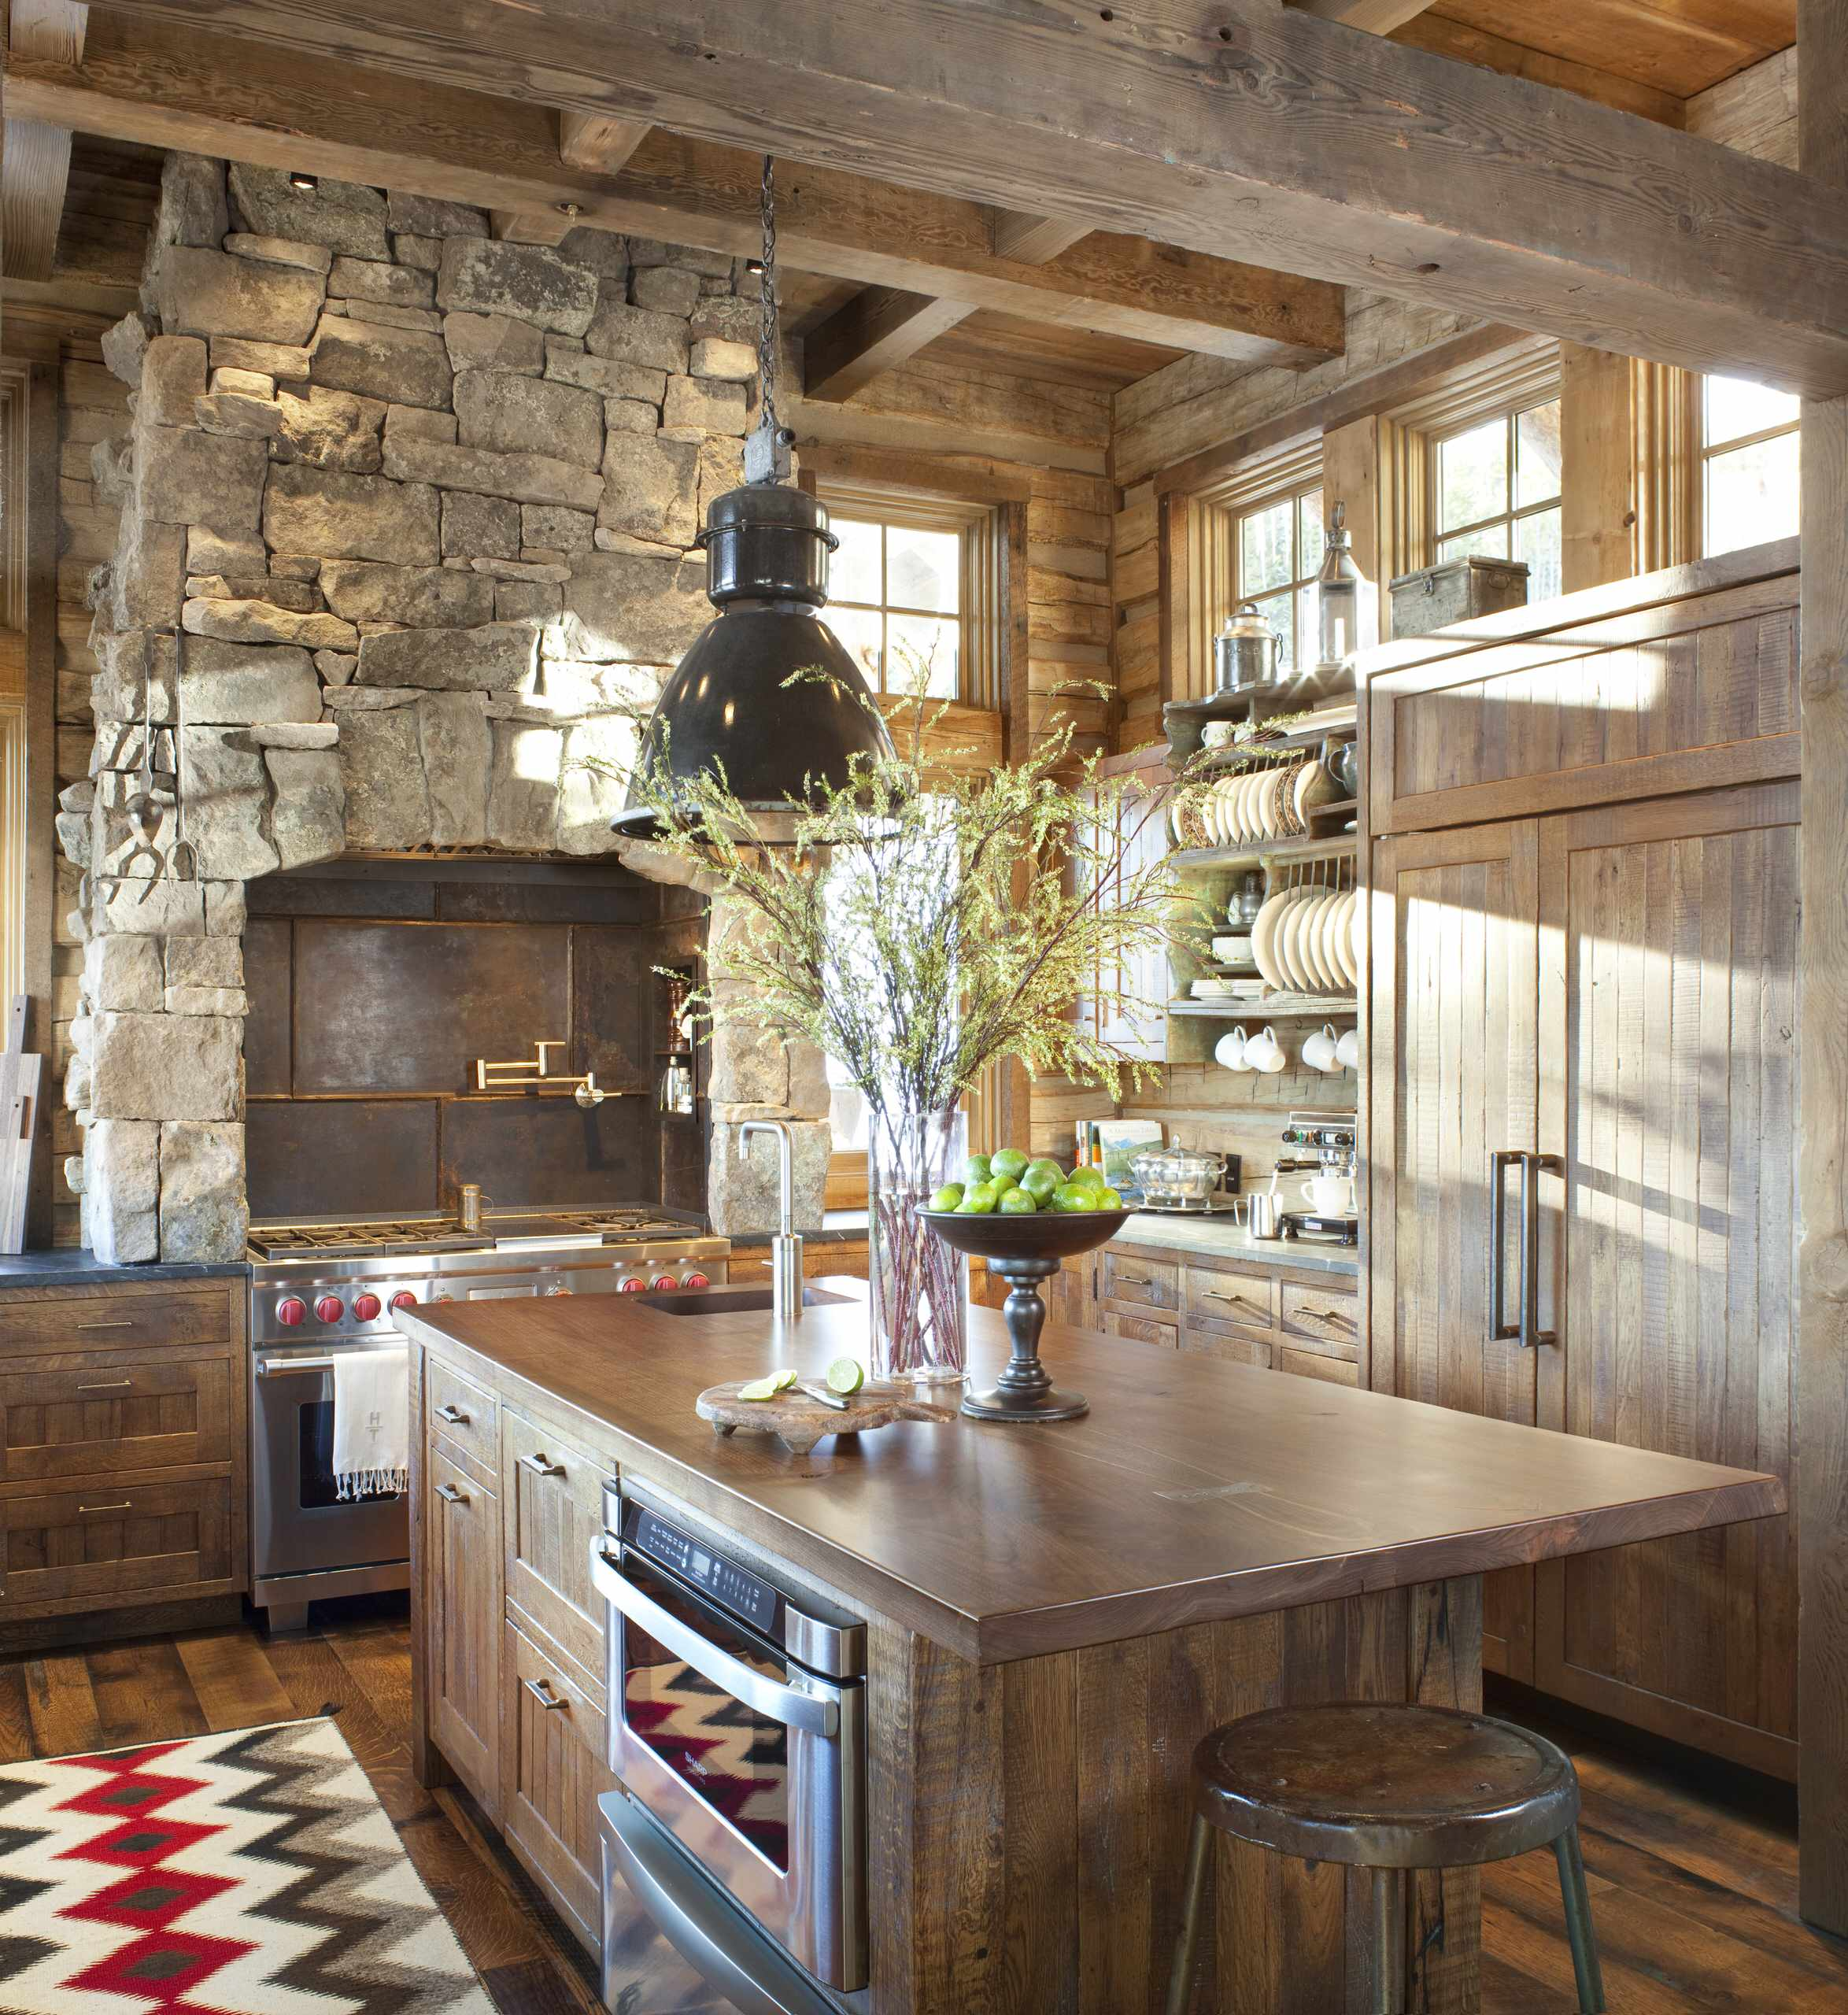 75 Beautiful Rustic Kitchen With Metal Backsplash Pictures Ideas November 2020 Houzz